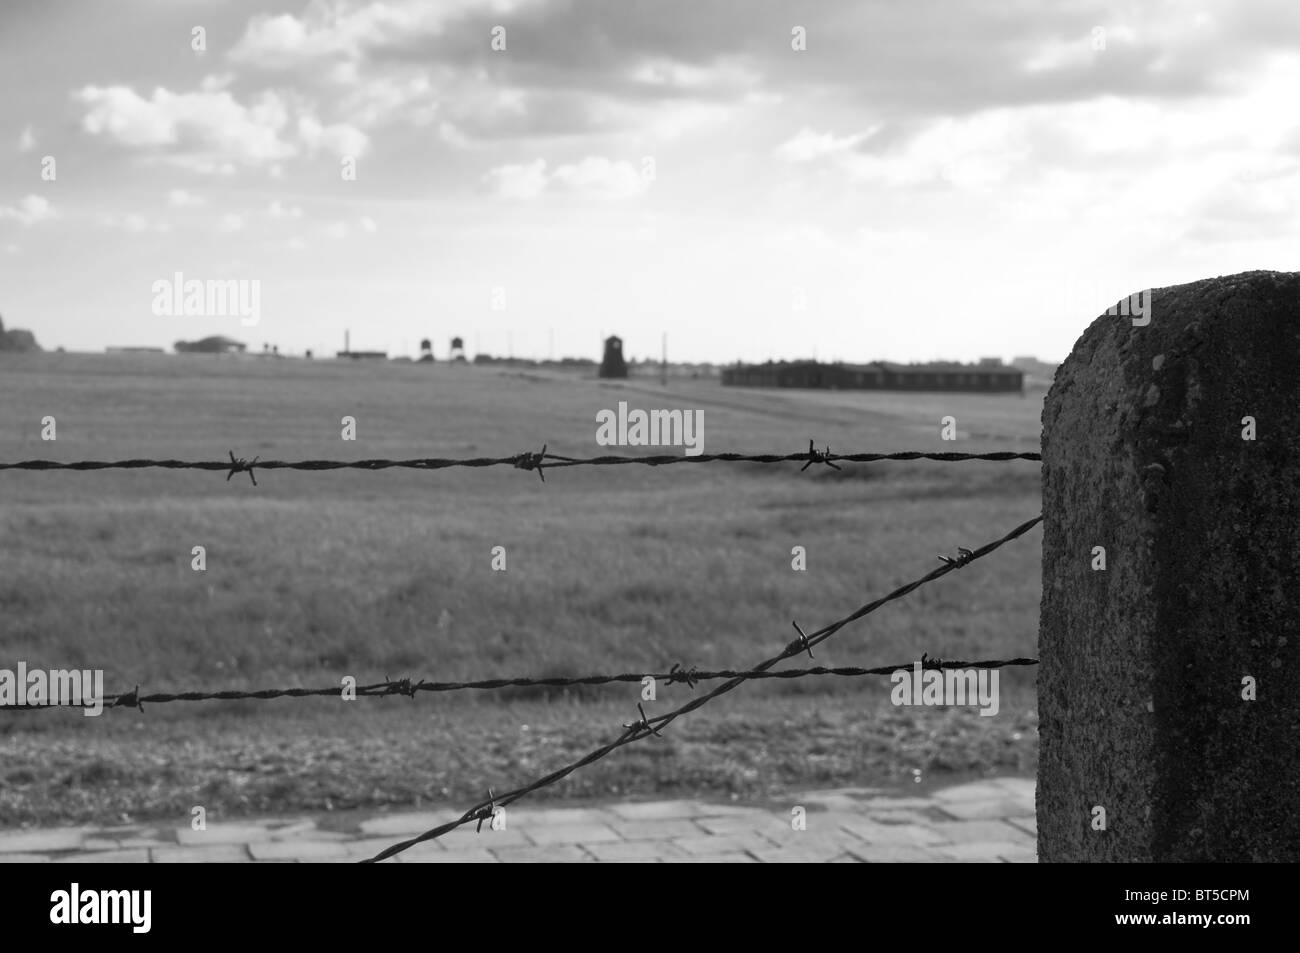 barbed wire fence in concentration camp in Majdanek in Poland - Stock Image